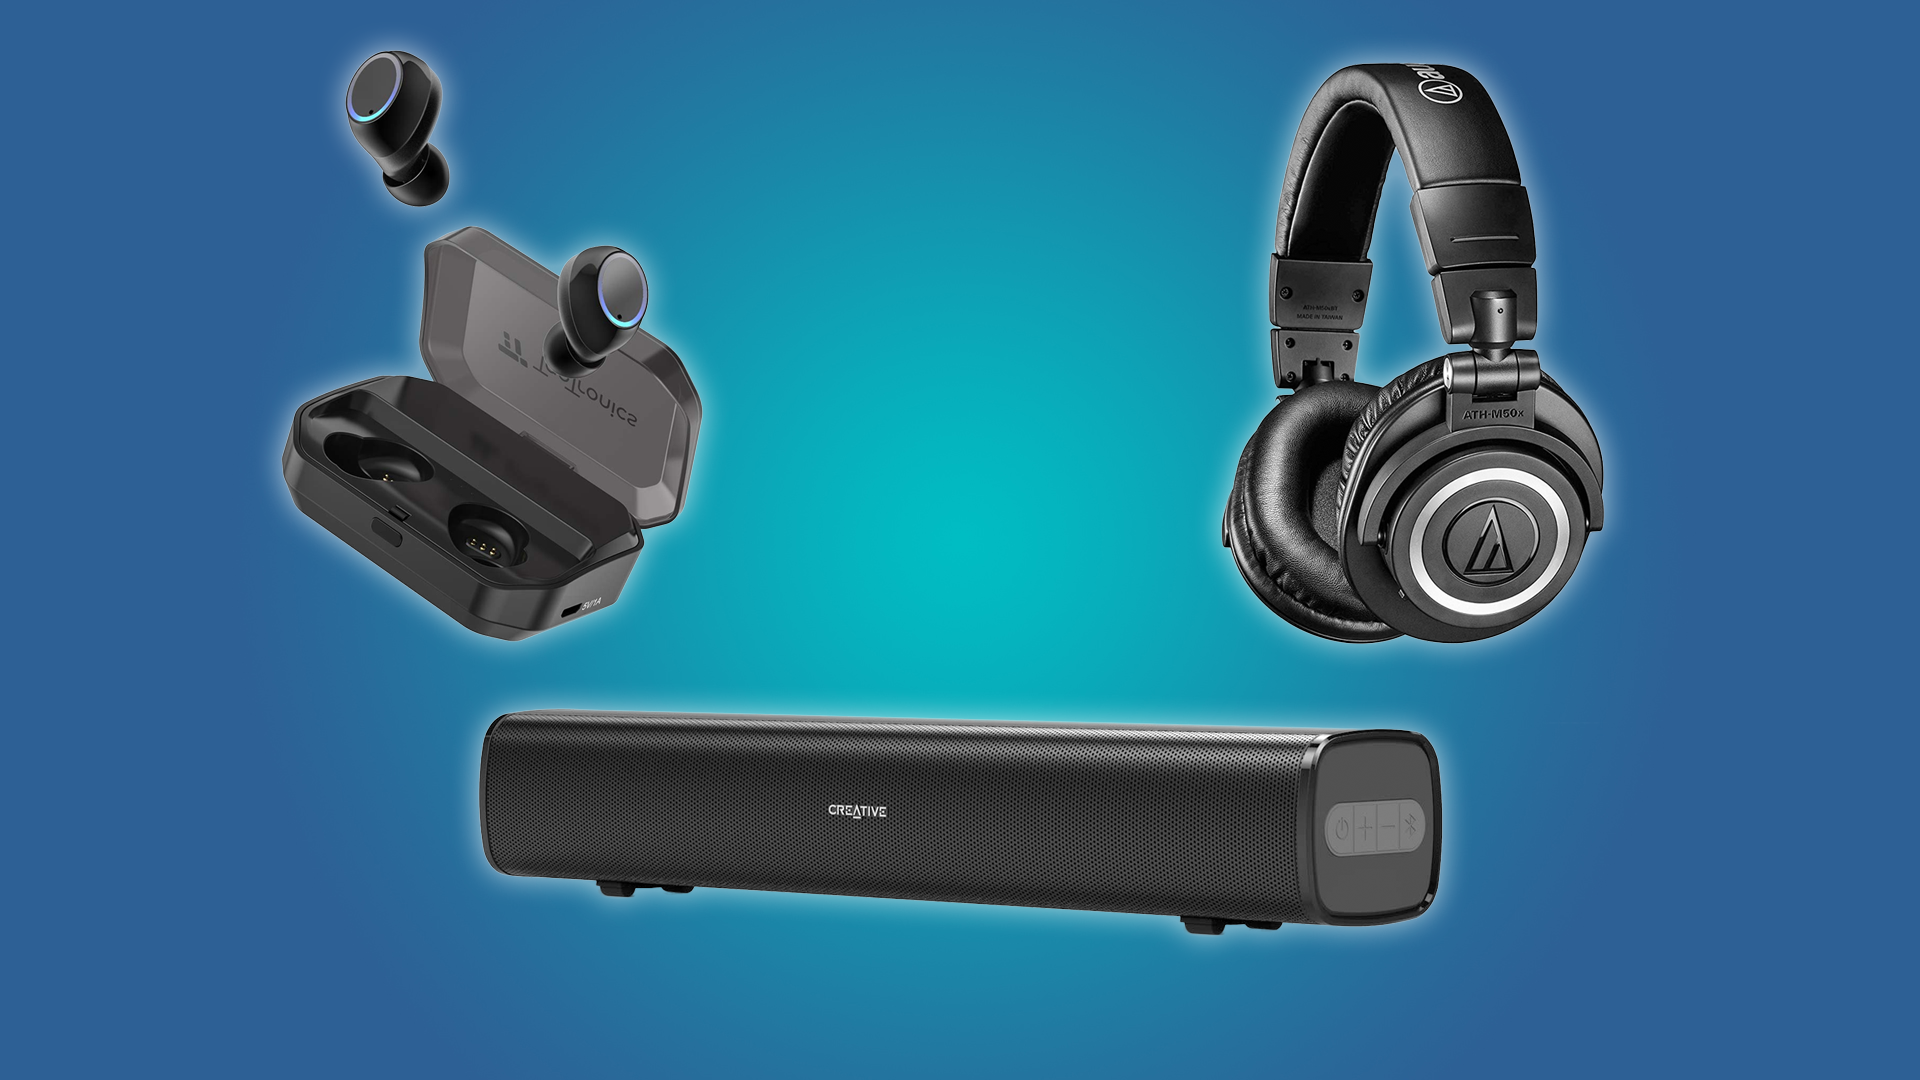 The Creative Stage Air Soundbar, the TaoTronics Earbuds, and the Audio-Technica ATH-M50xBT